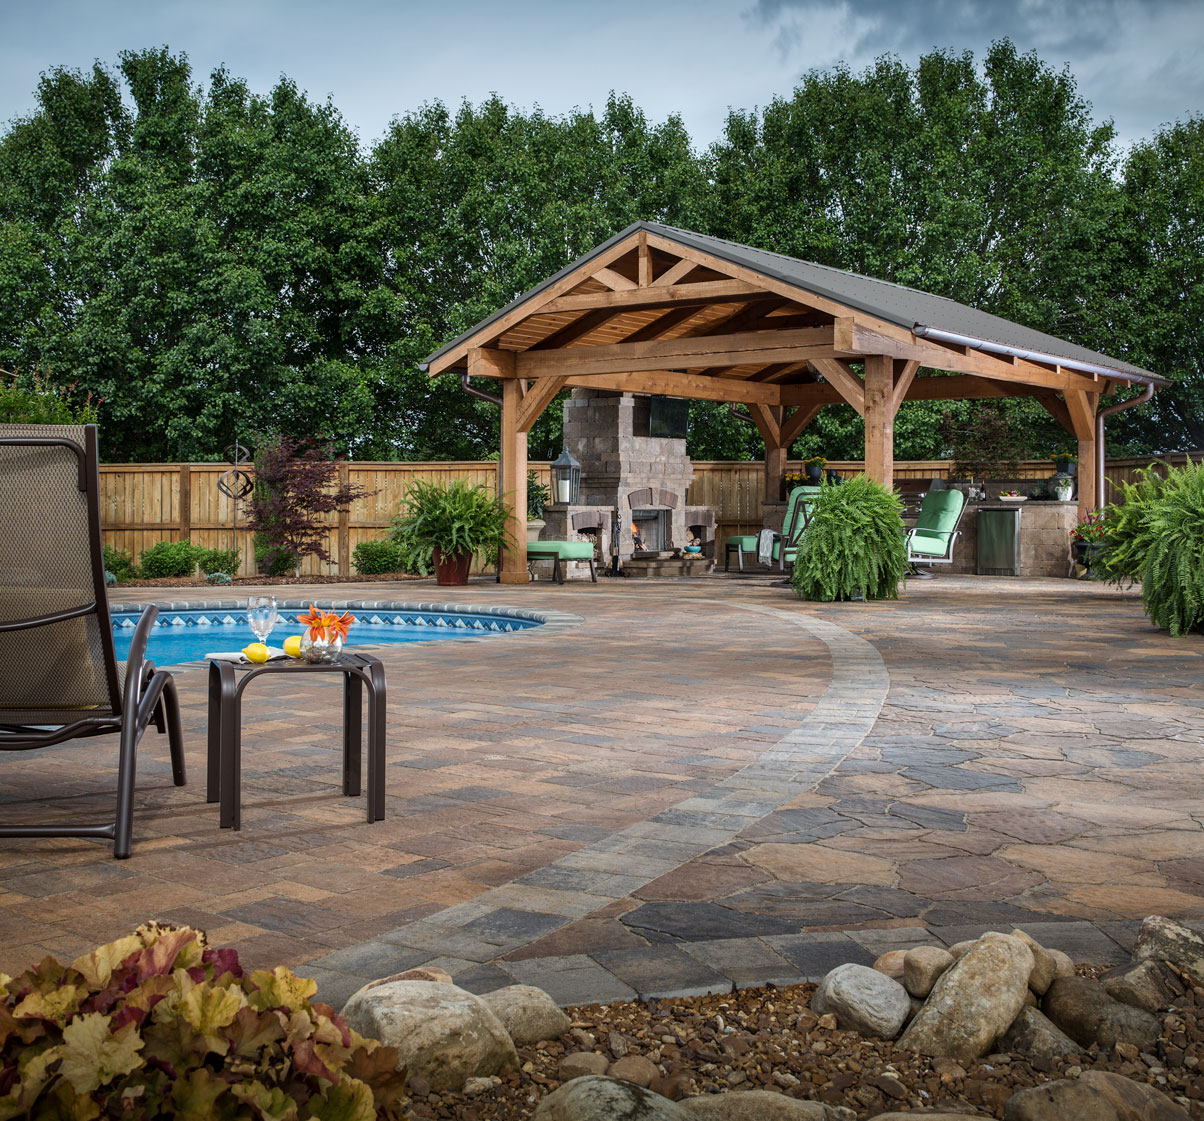 Paver Patio Ideas Backyard Design Stone Patio Pictures in 11 Smart Initiatives of How to Craft Backyard Stone Patio Design Ideas